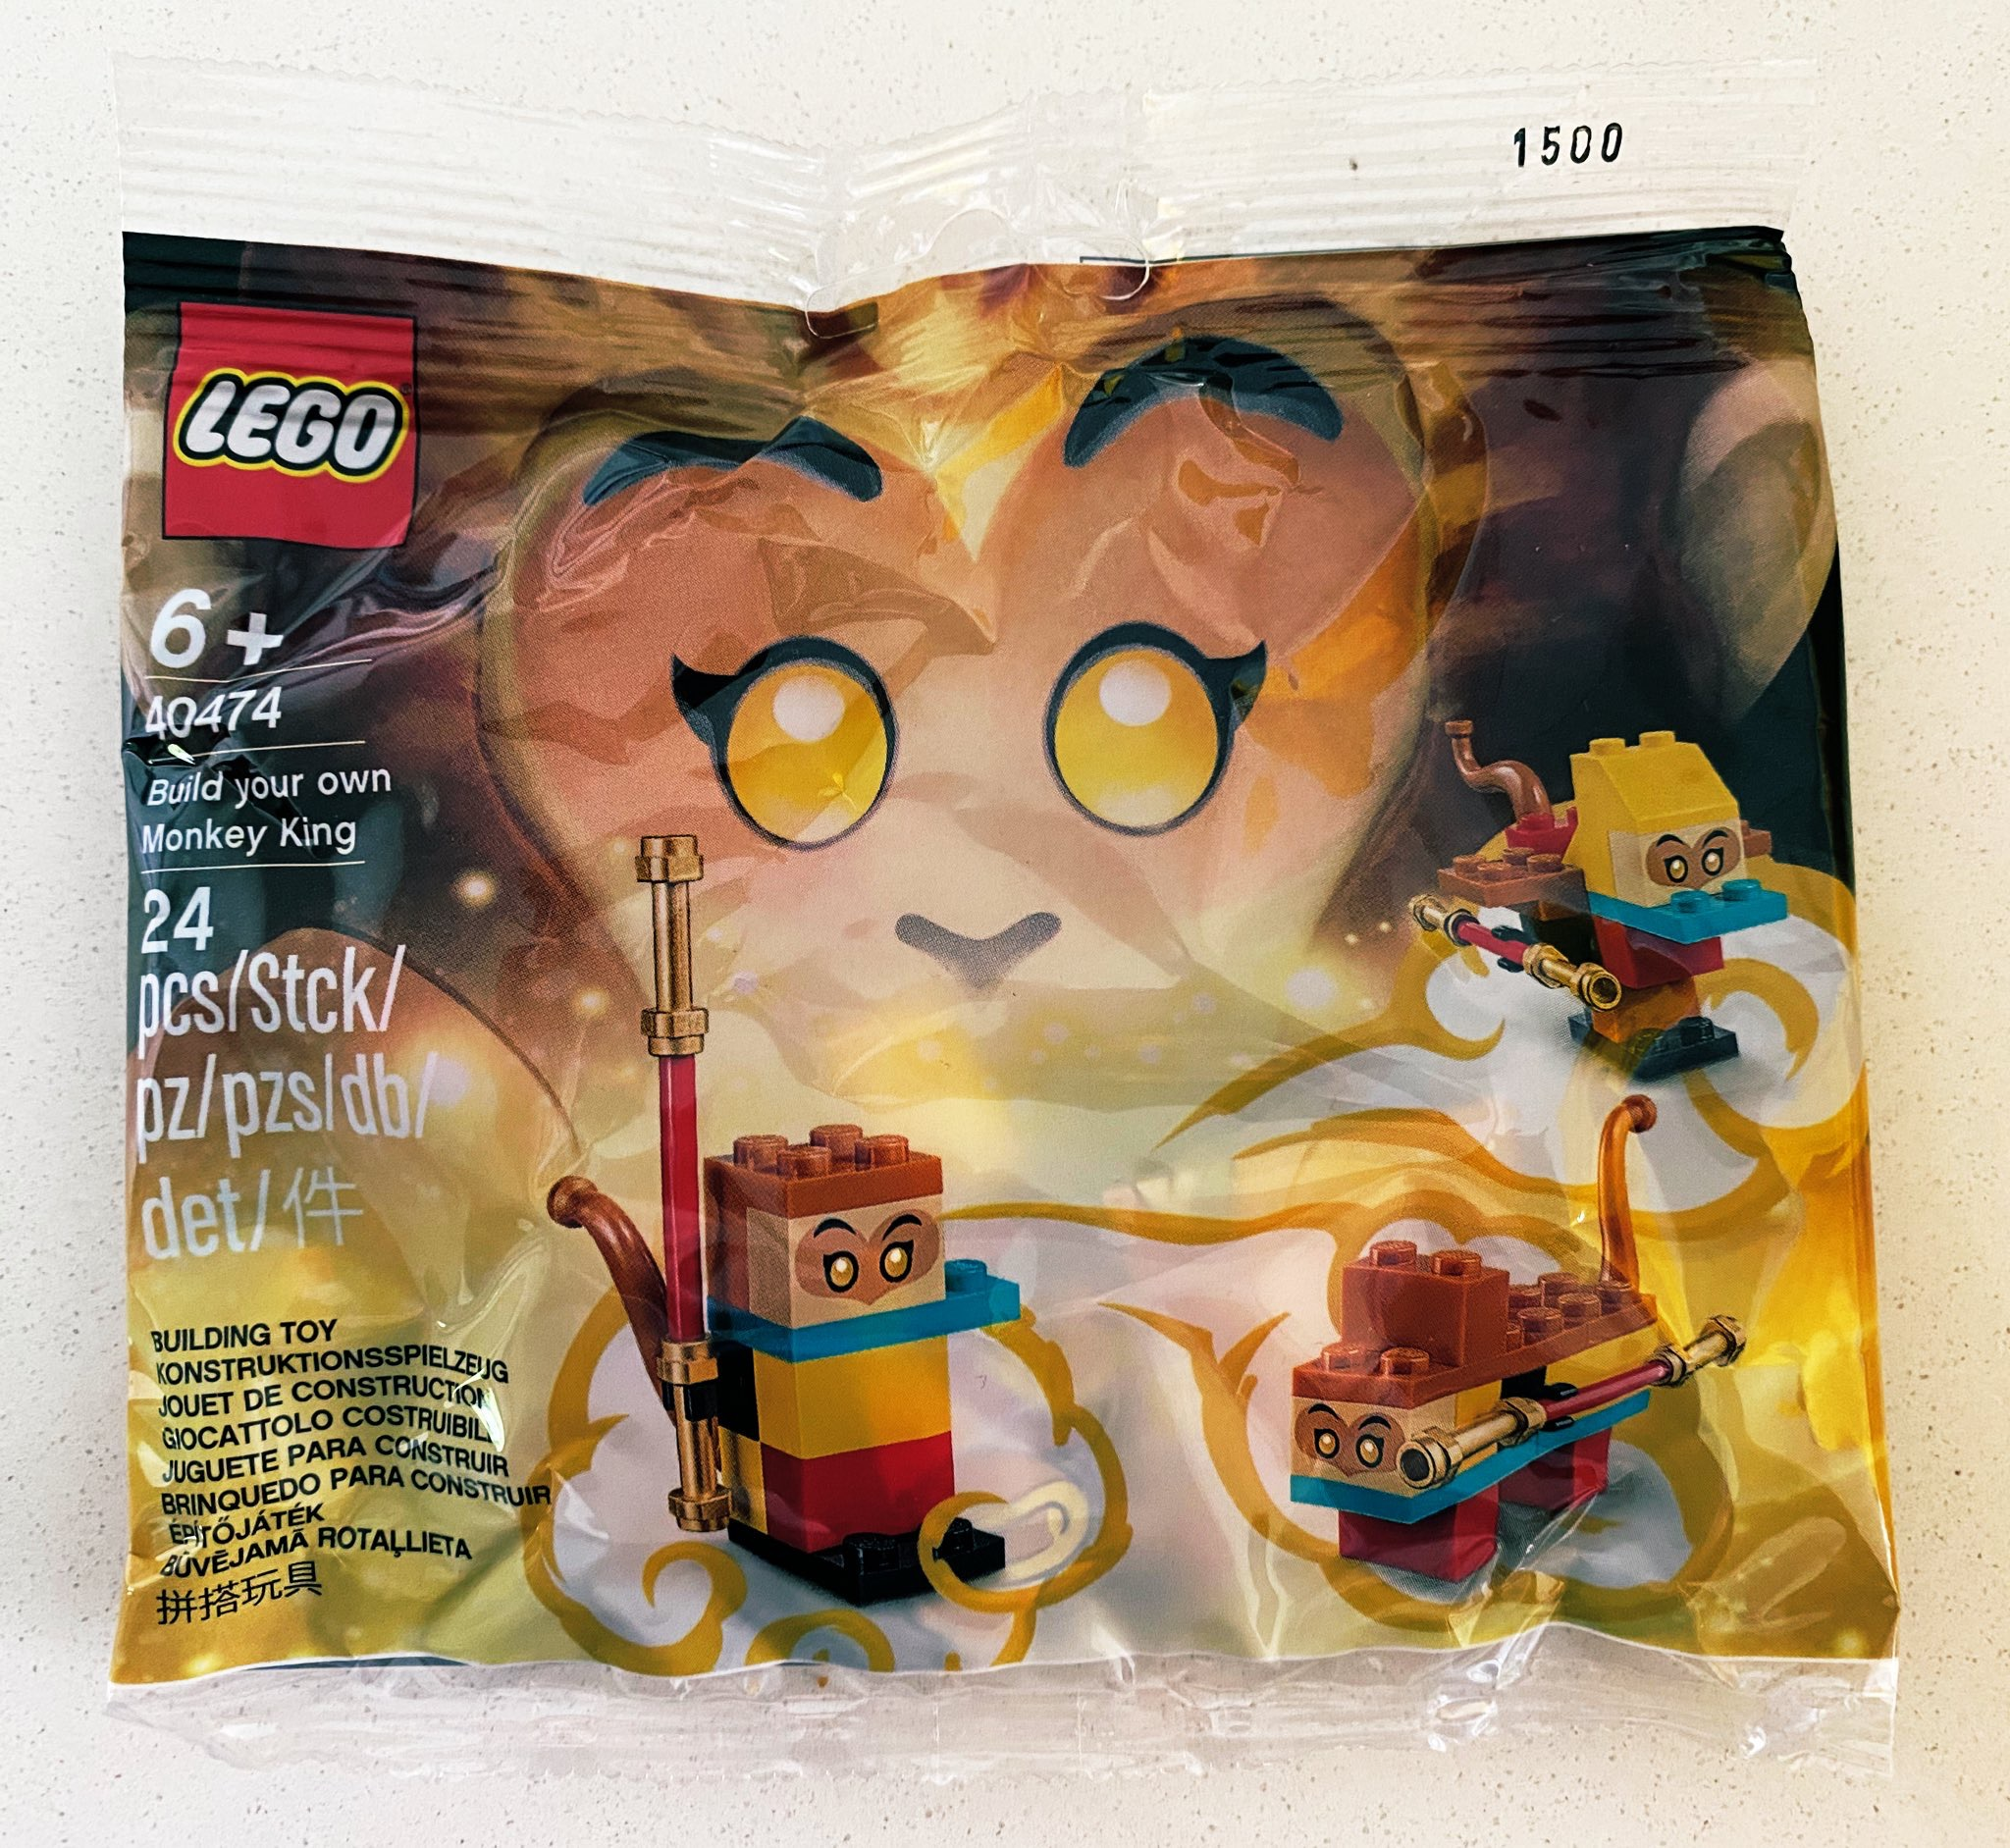 40474 Build your own Monkey King